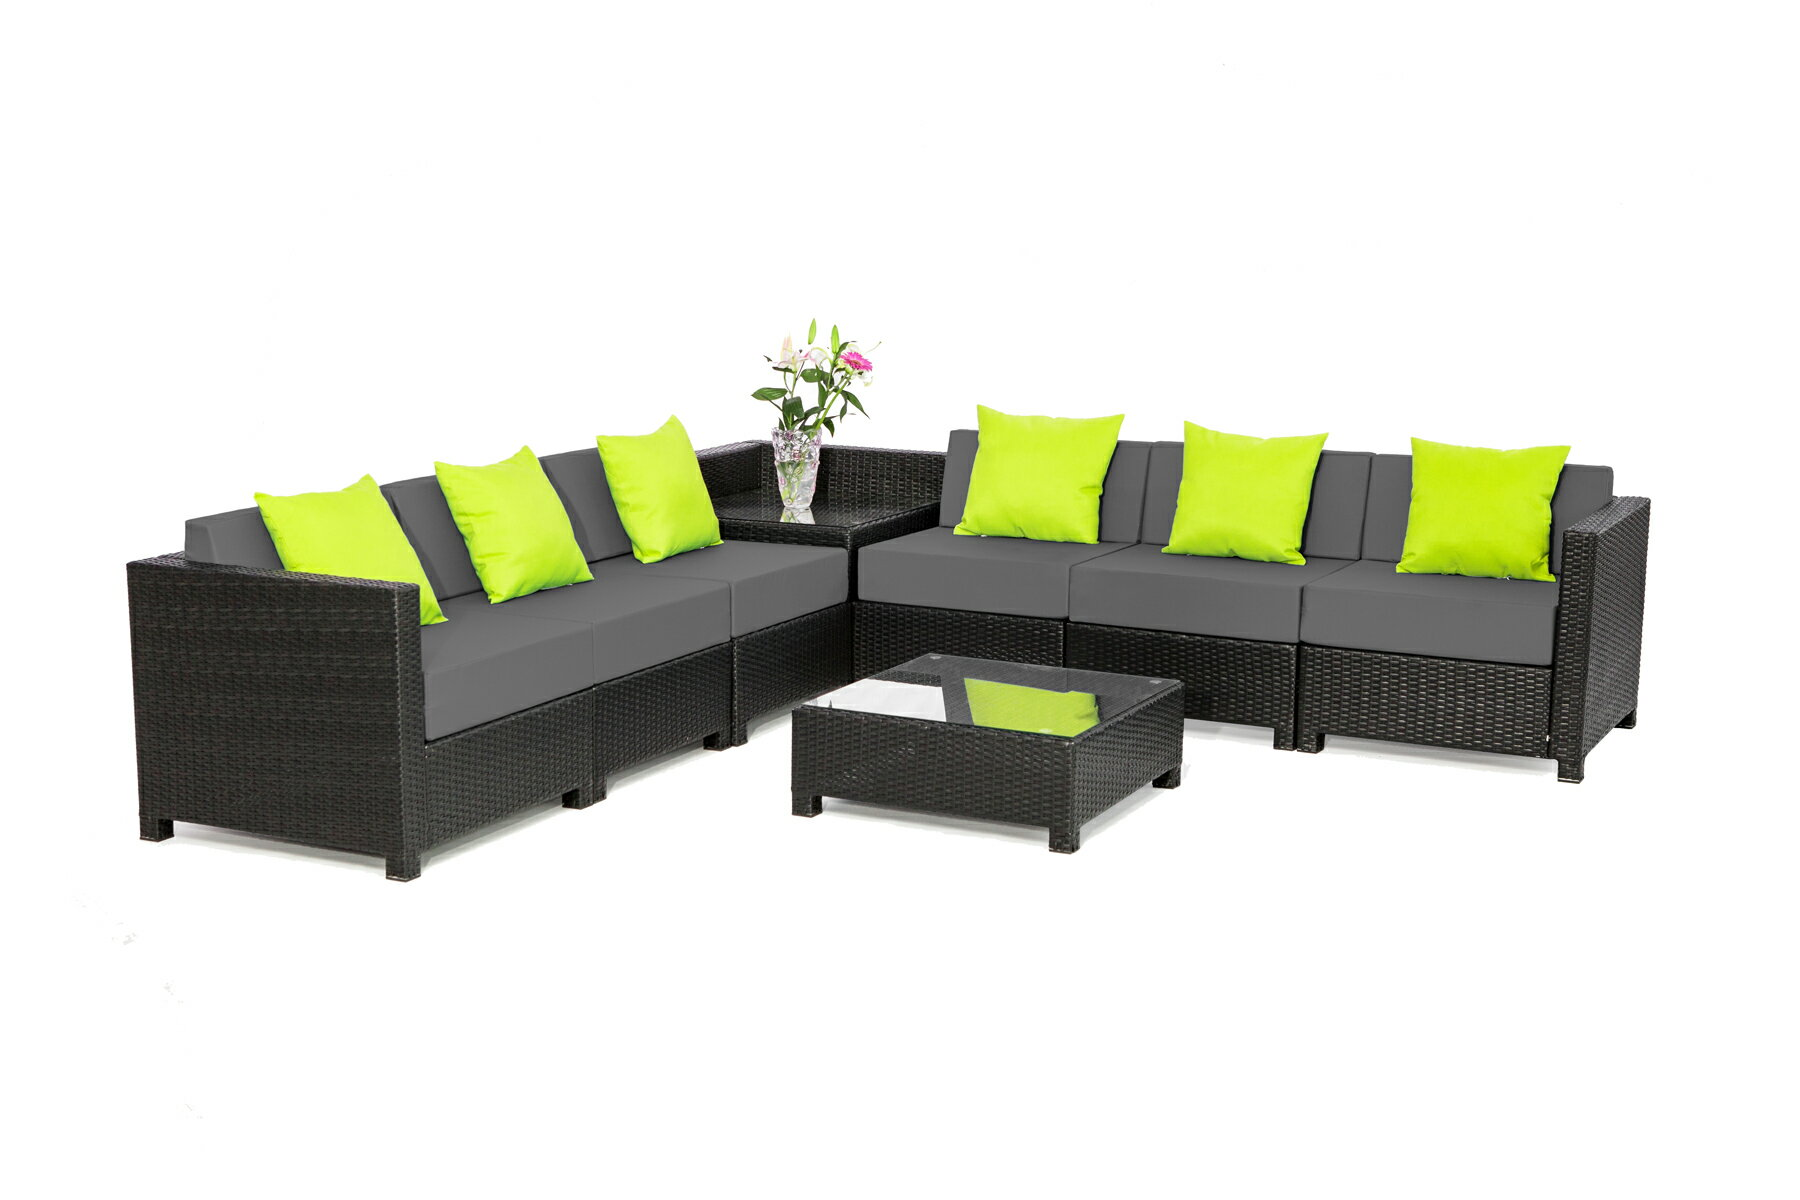 mcombo | Rakuten: Mcombo 8 pcs Luxury Wicker Patio Sectional ...